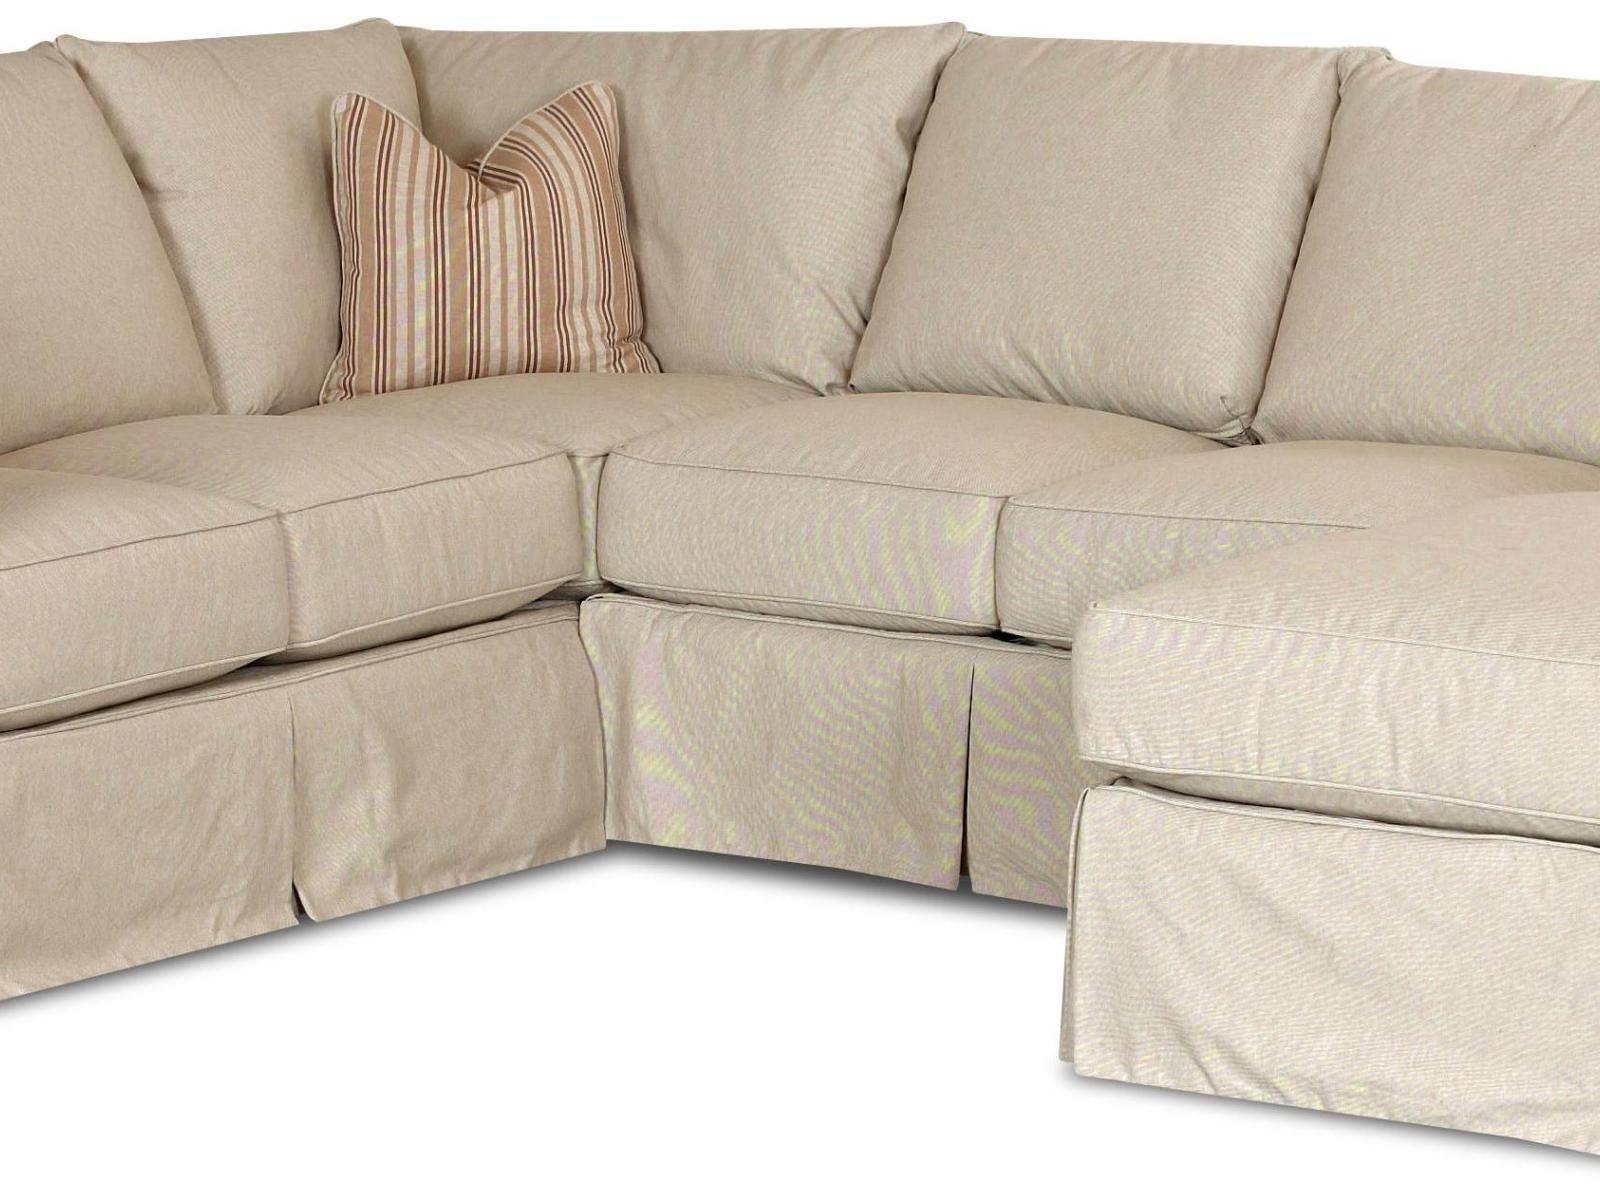 ▻ Sofa : 5 Lovely Sofa Covers For Sectionals Cover For Sectional Regarding Chaise Sofa Covers (View 28 of 30)